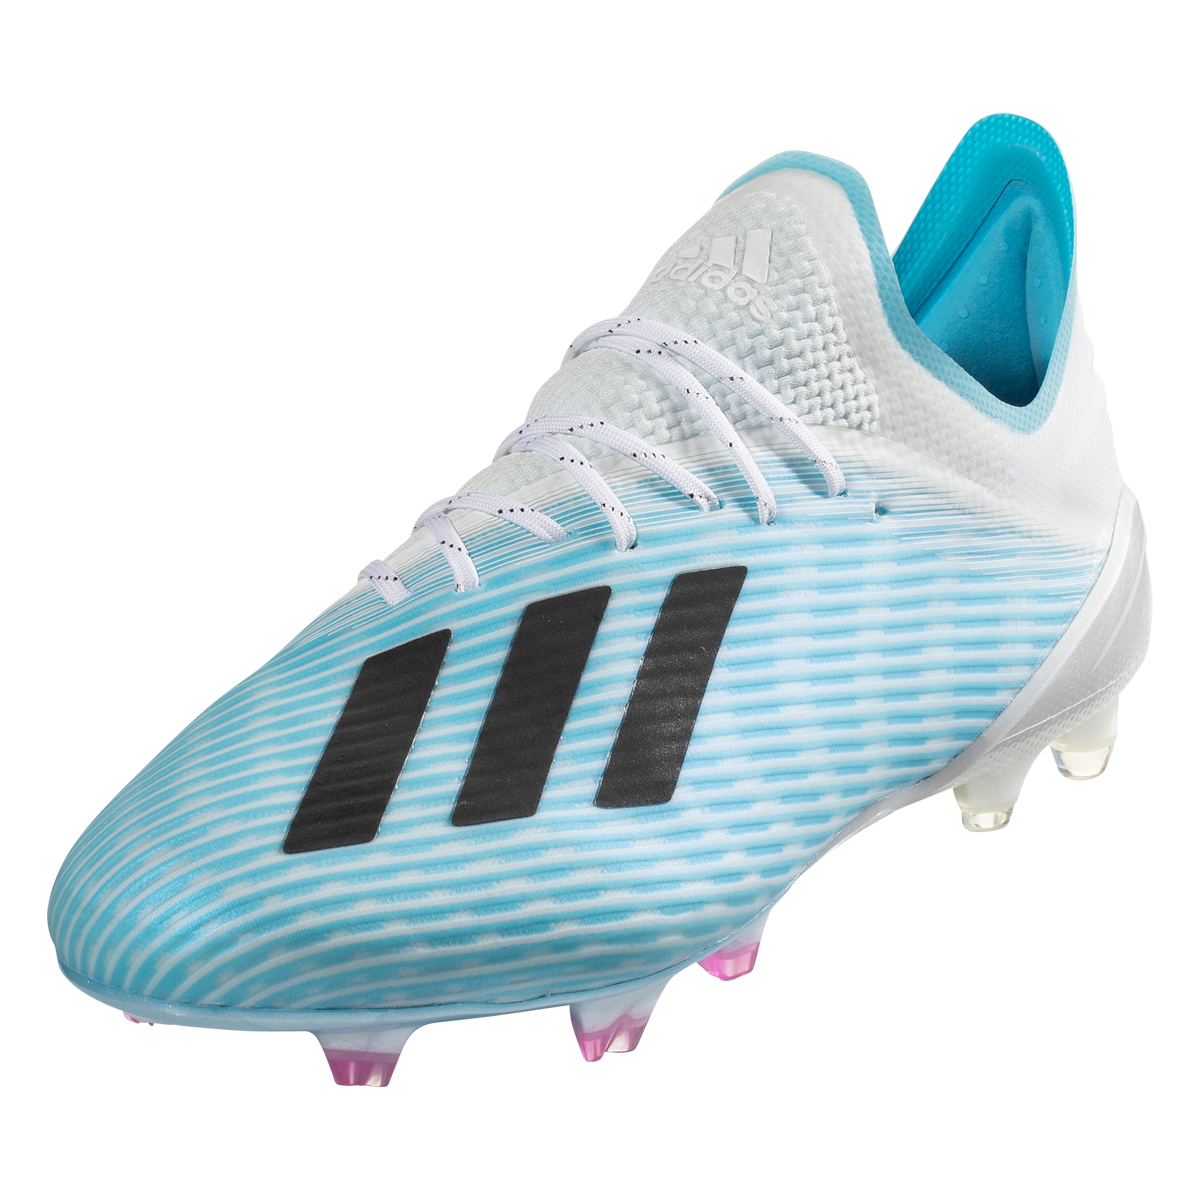 Adidas X 19 1 Fg Soccer Cleats Cyan Black Pink 11 5 Soccer Cleats Nike Football Boots Soccer Cleats Nike